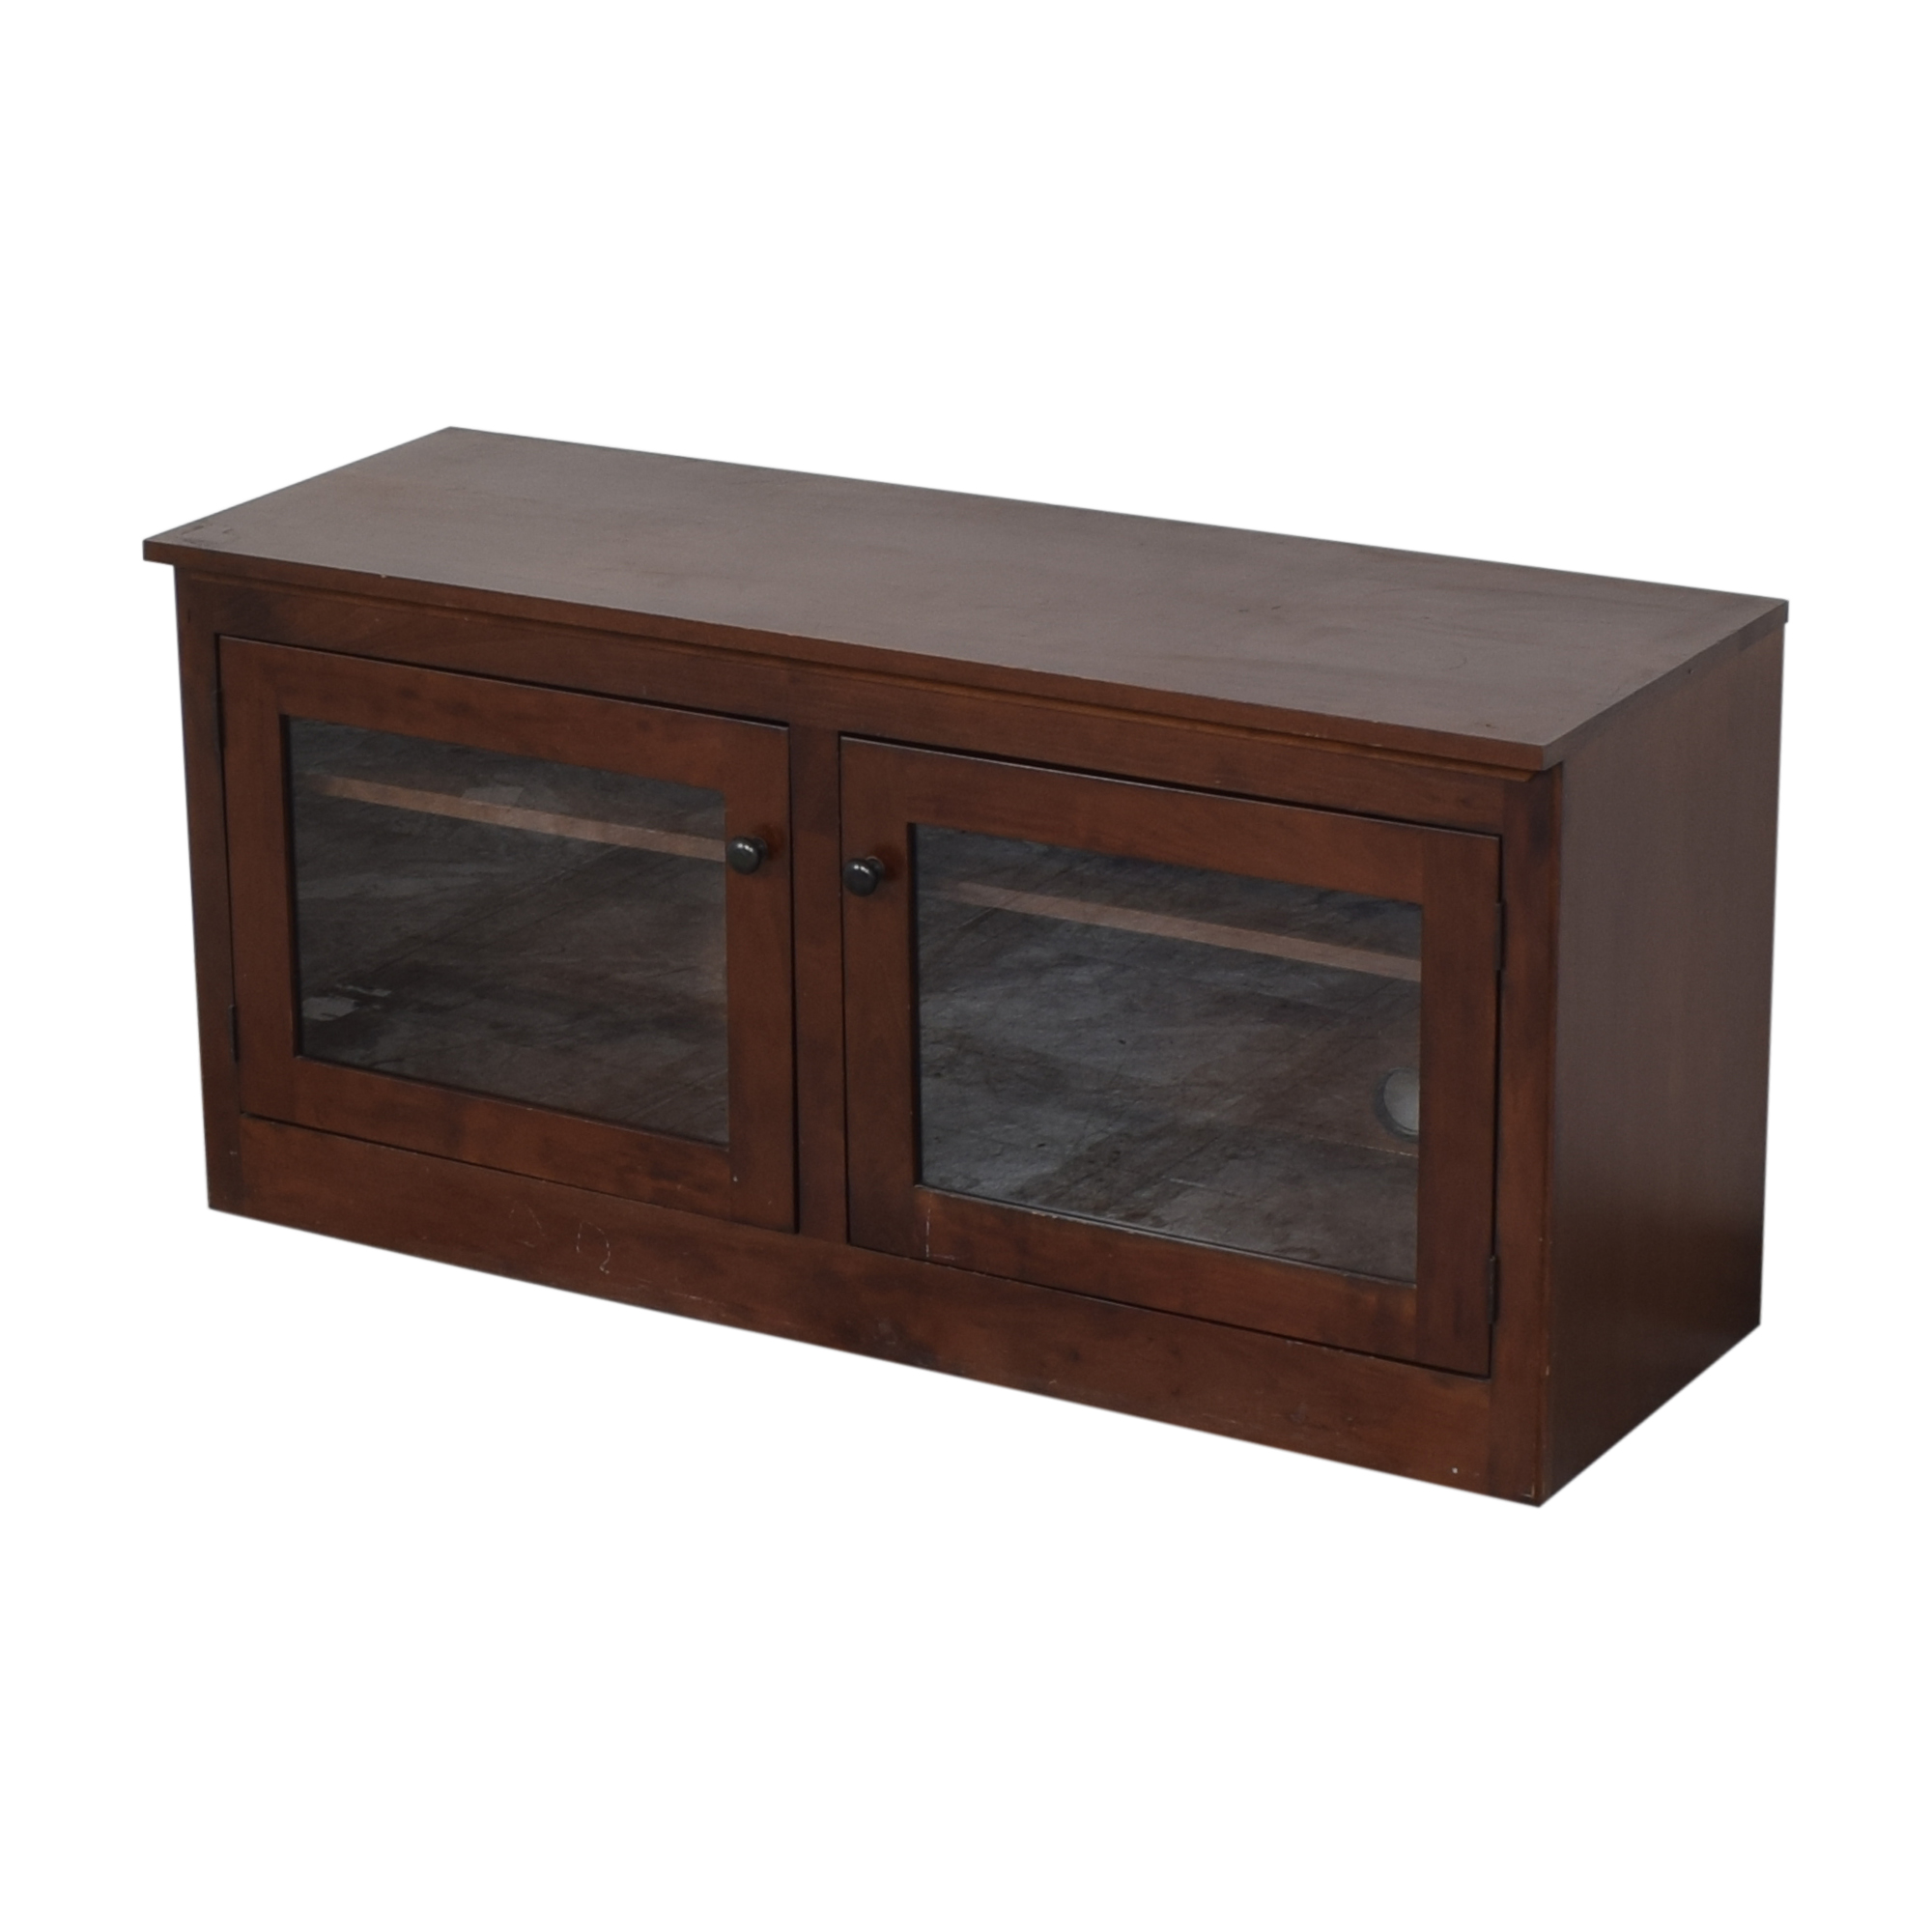 Media Console with Glass Doors dimensions